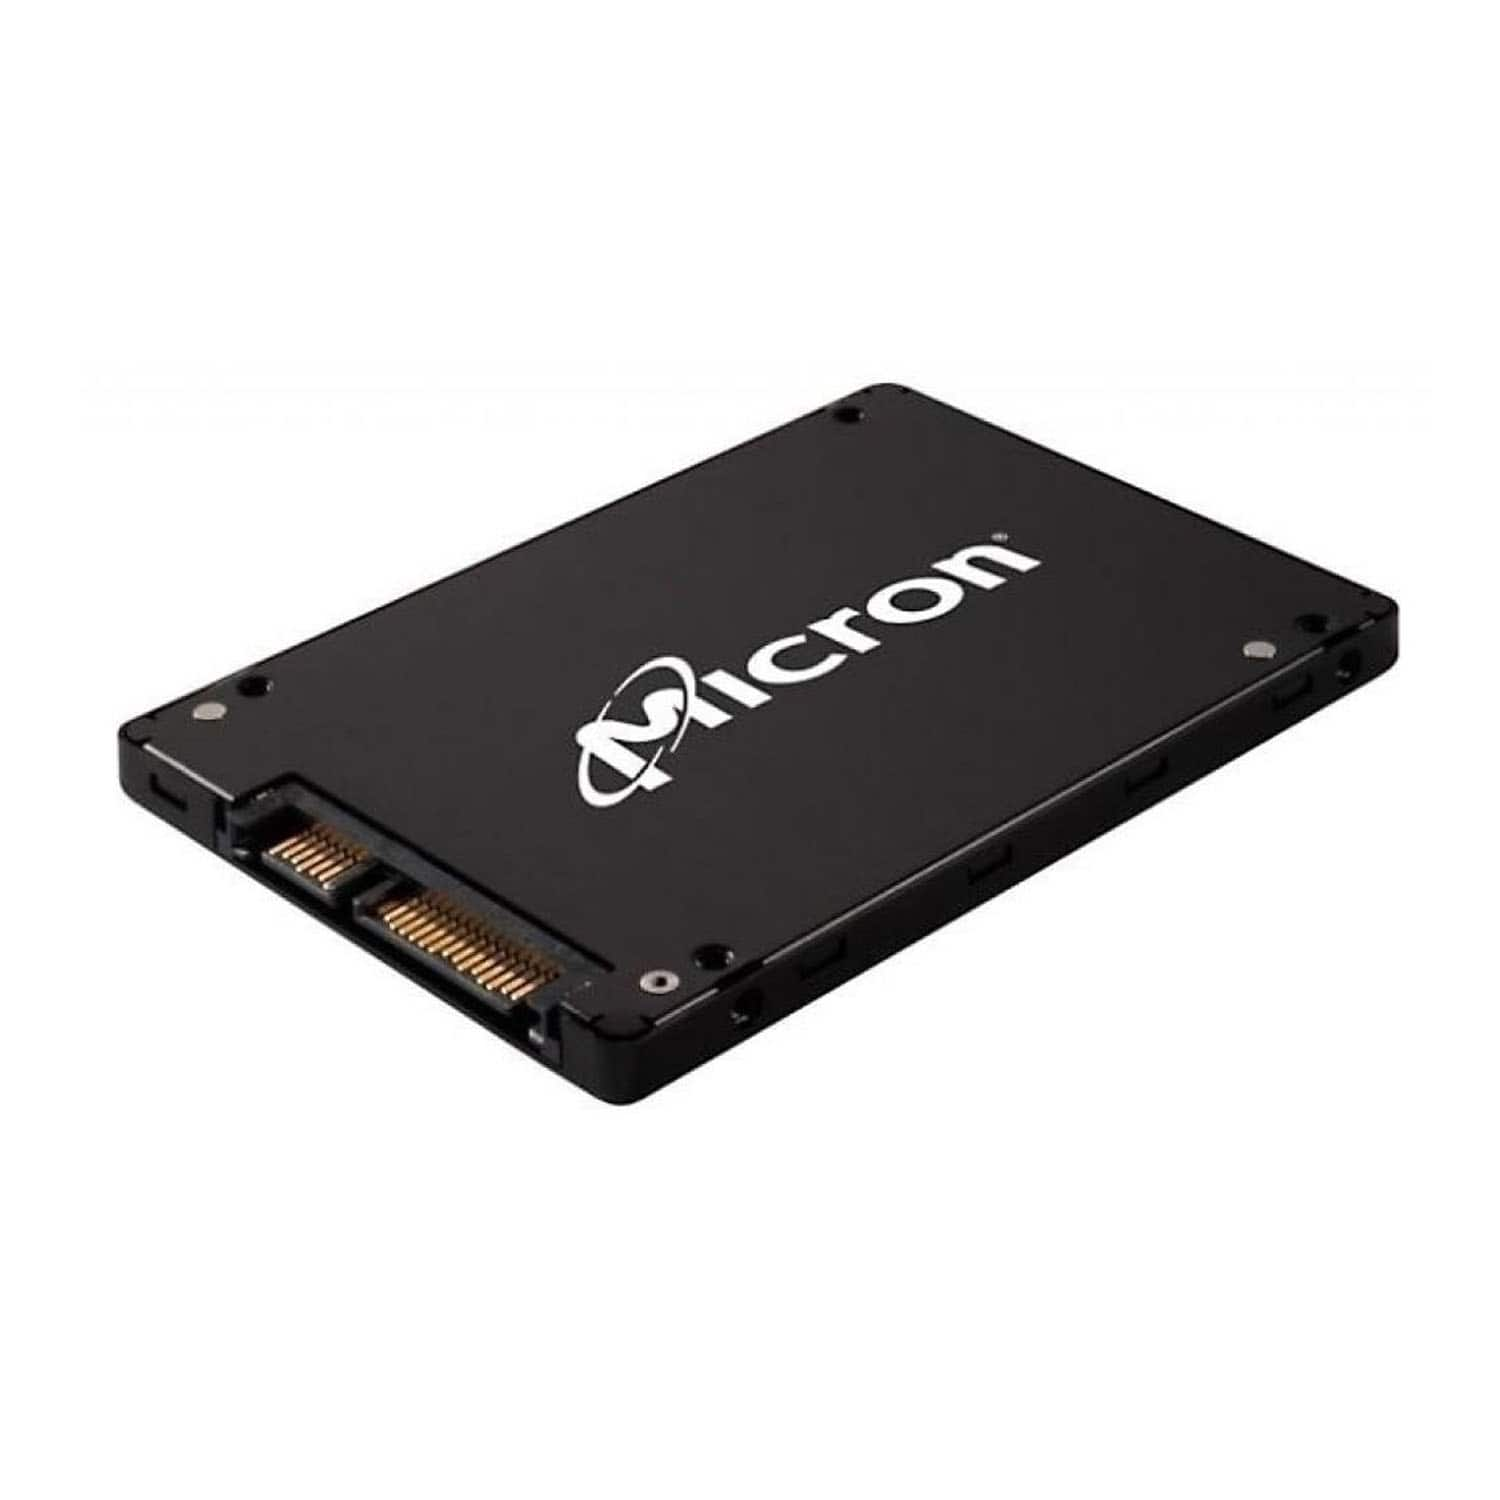 """2TB Micron 2.5"""" SATA III Solid State Drive  for $269.99 + Free Shipping"""